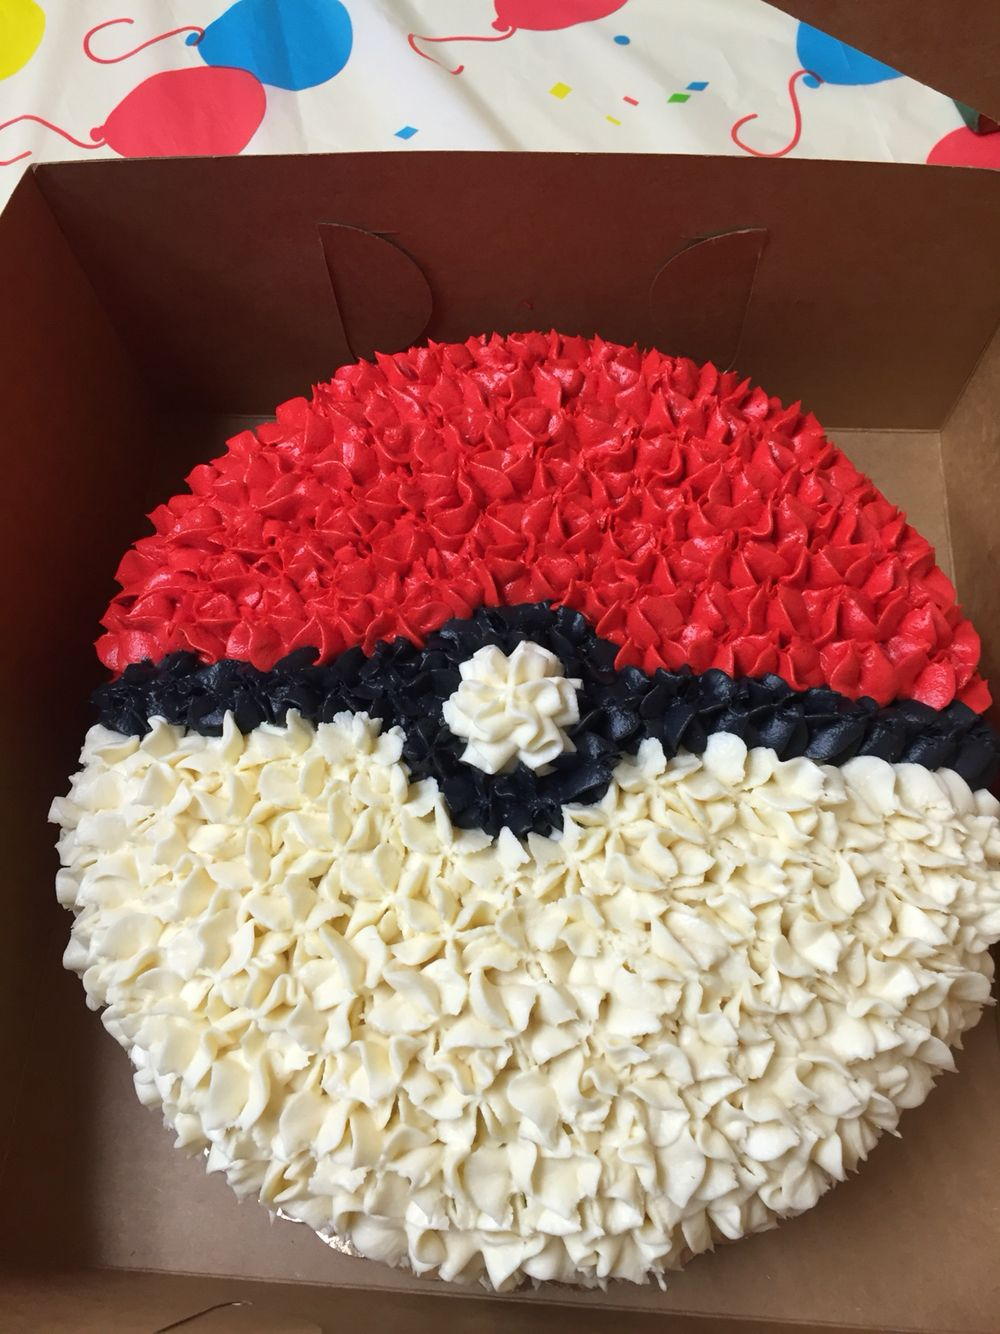 Homemade Cake Icing Designs : Homemade Pokemon Birthday Cake with buttercream icing ...